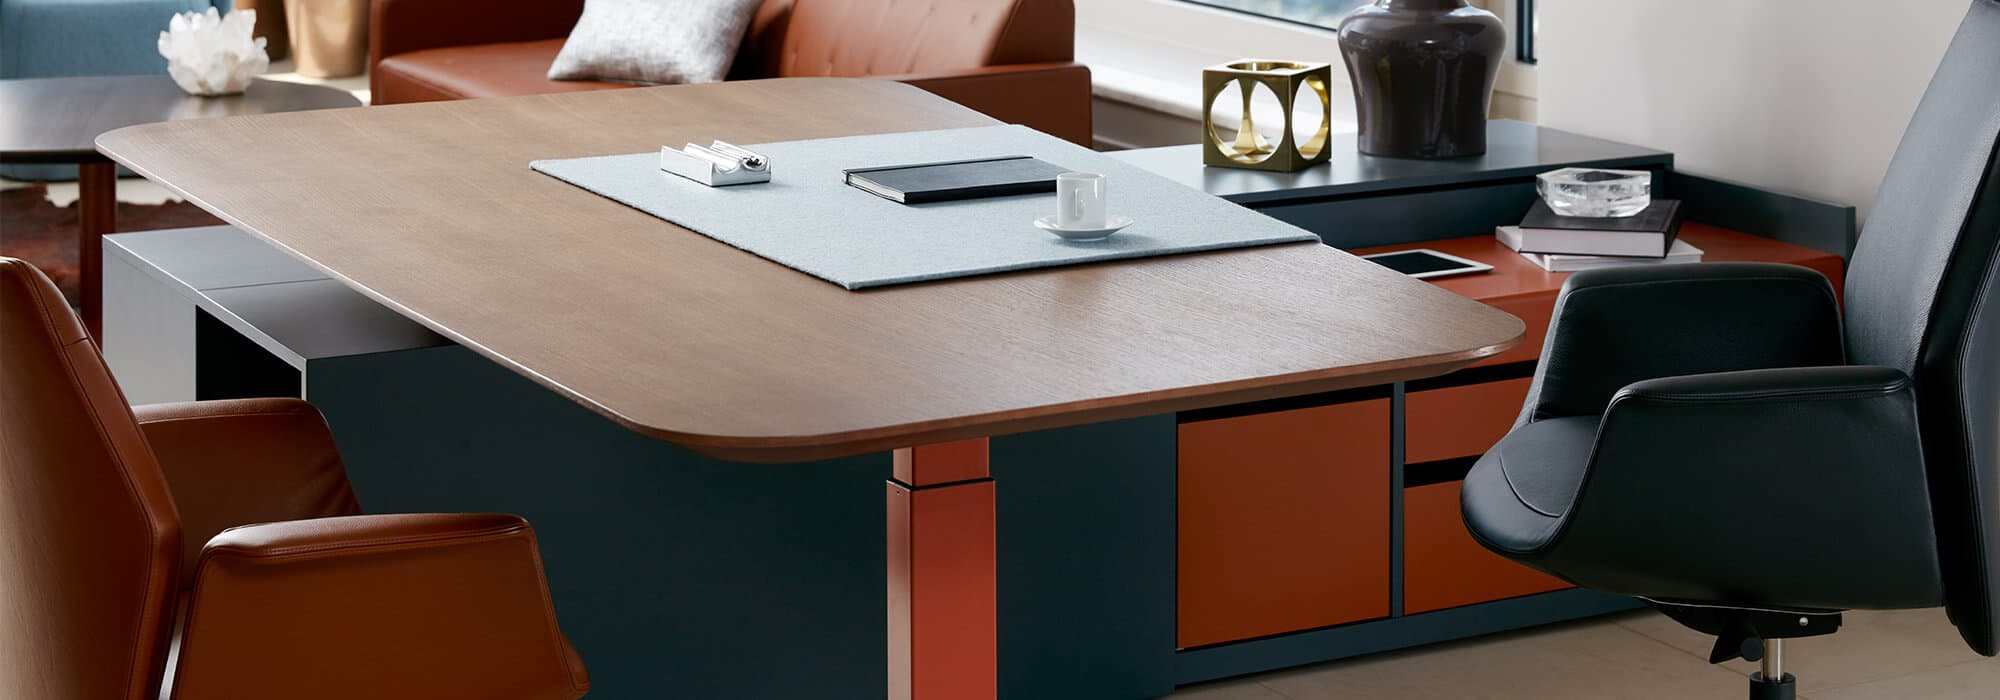 What is the cost of an office desk?